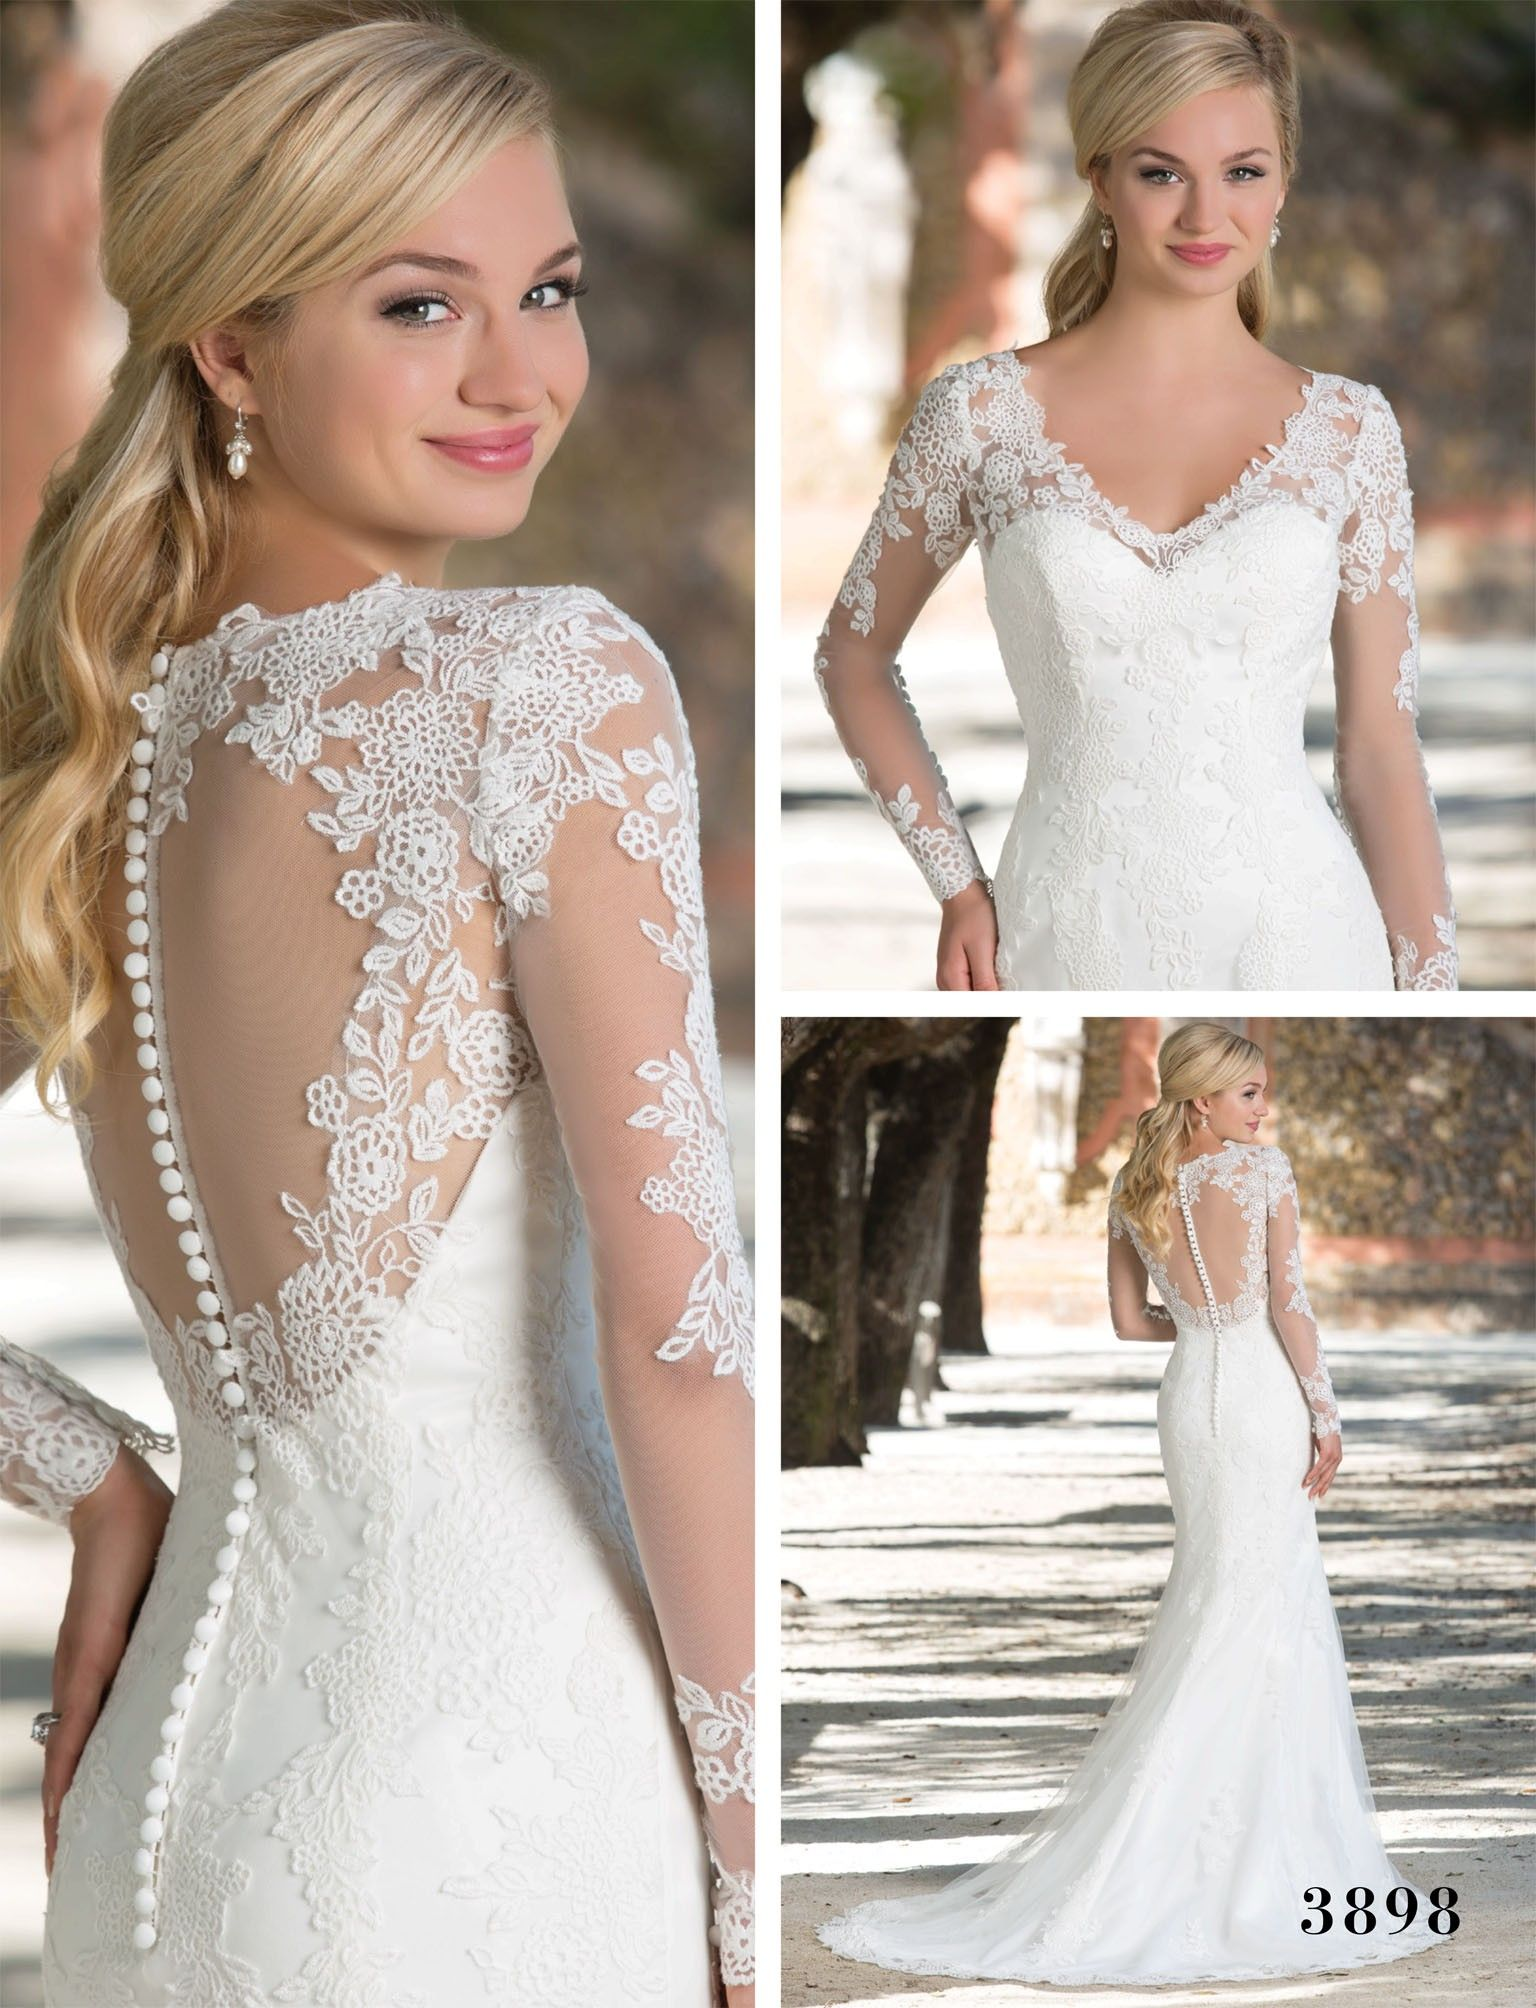 Twilight Wedding Dress – Get the Look | Wedding Dresses | Pinterest ... Twilight Wedding Dress